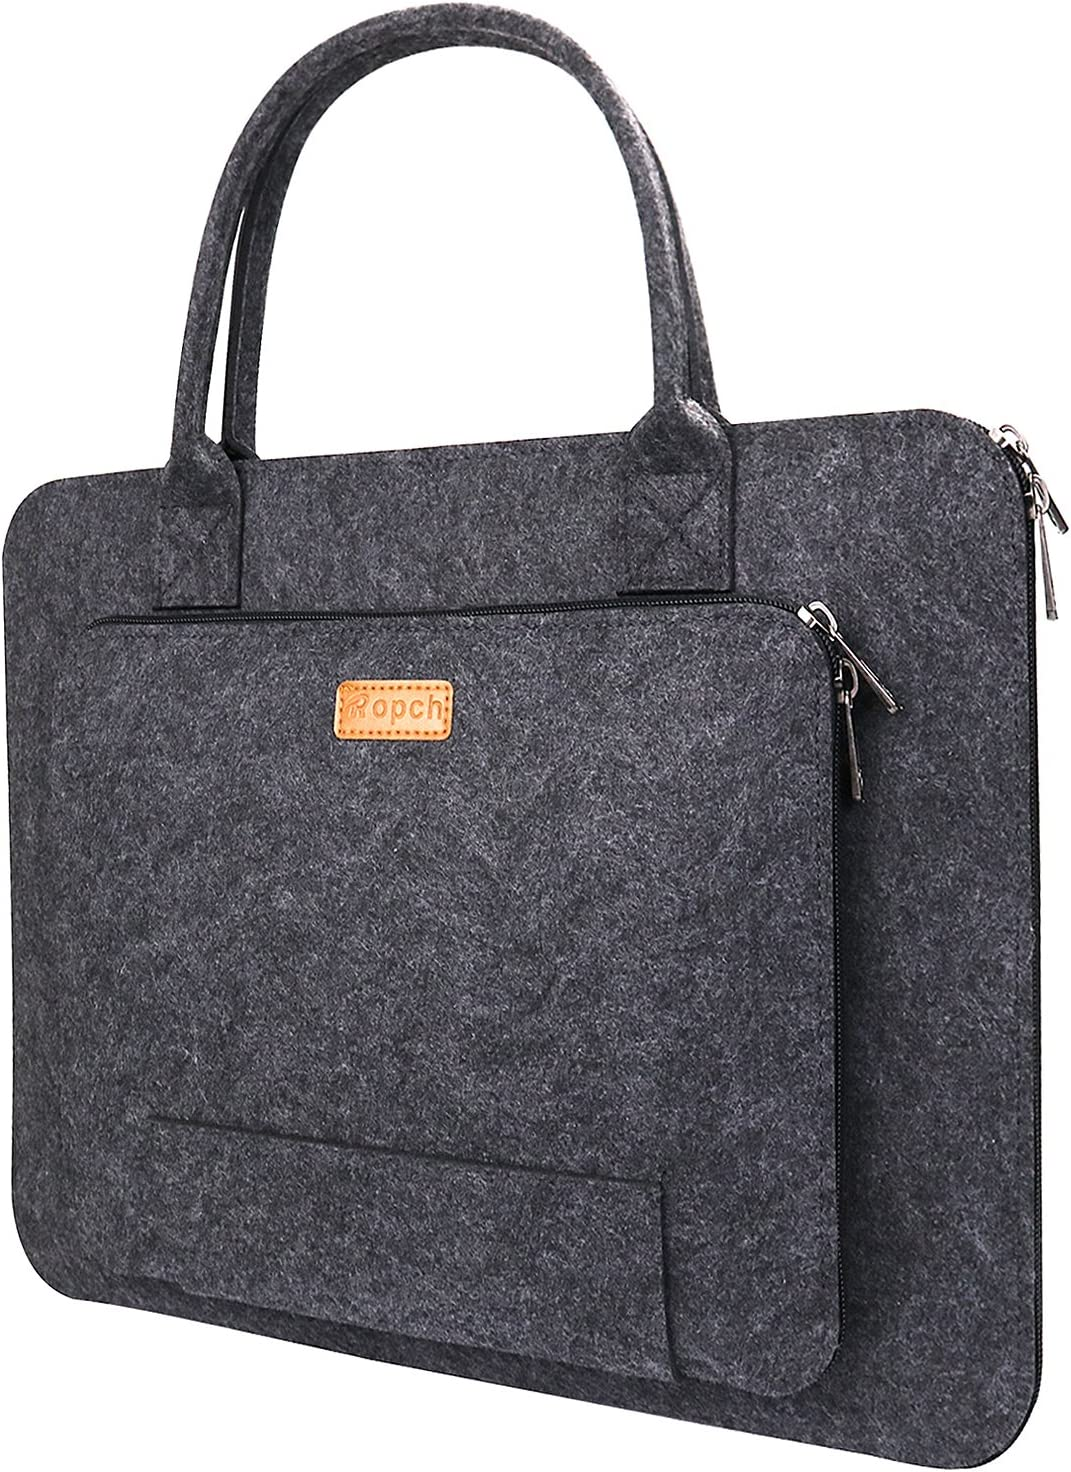 Max 40% OFF Ropch Felt Laptop Choice Sleeve Case for MacBook Apple 13.3 Inch Pr Pro